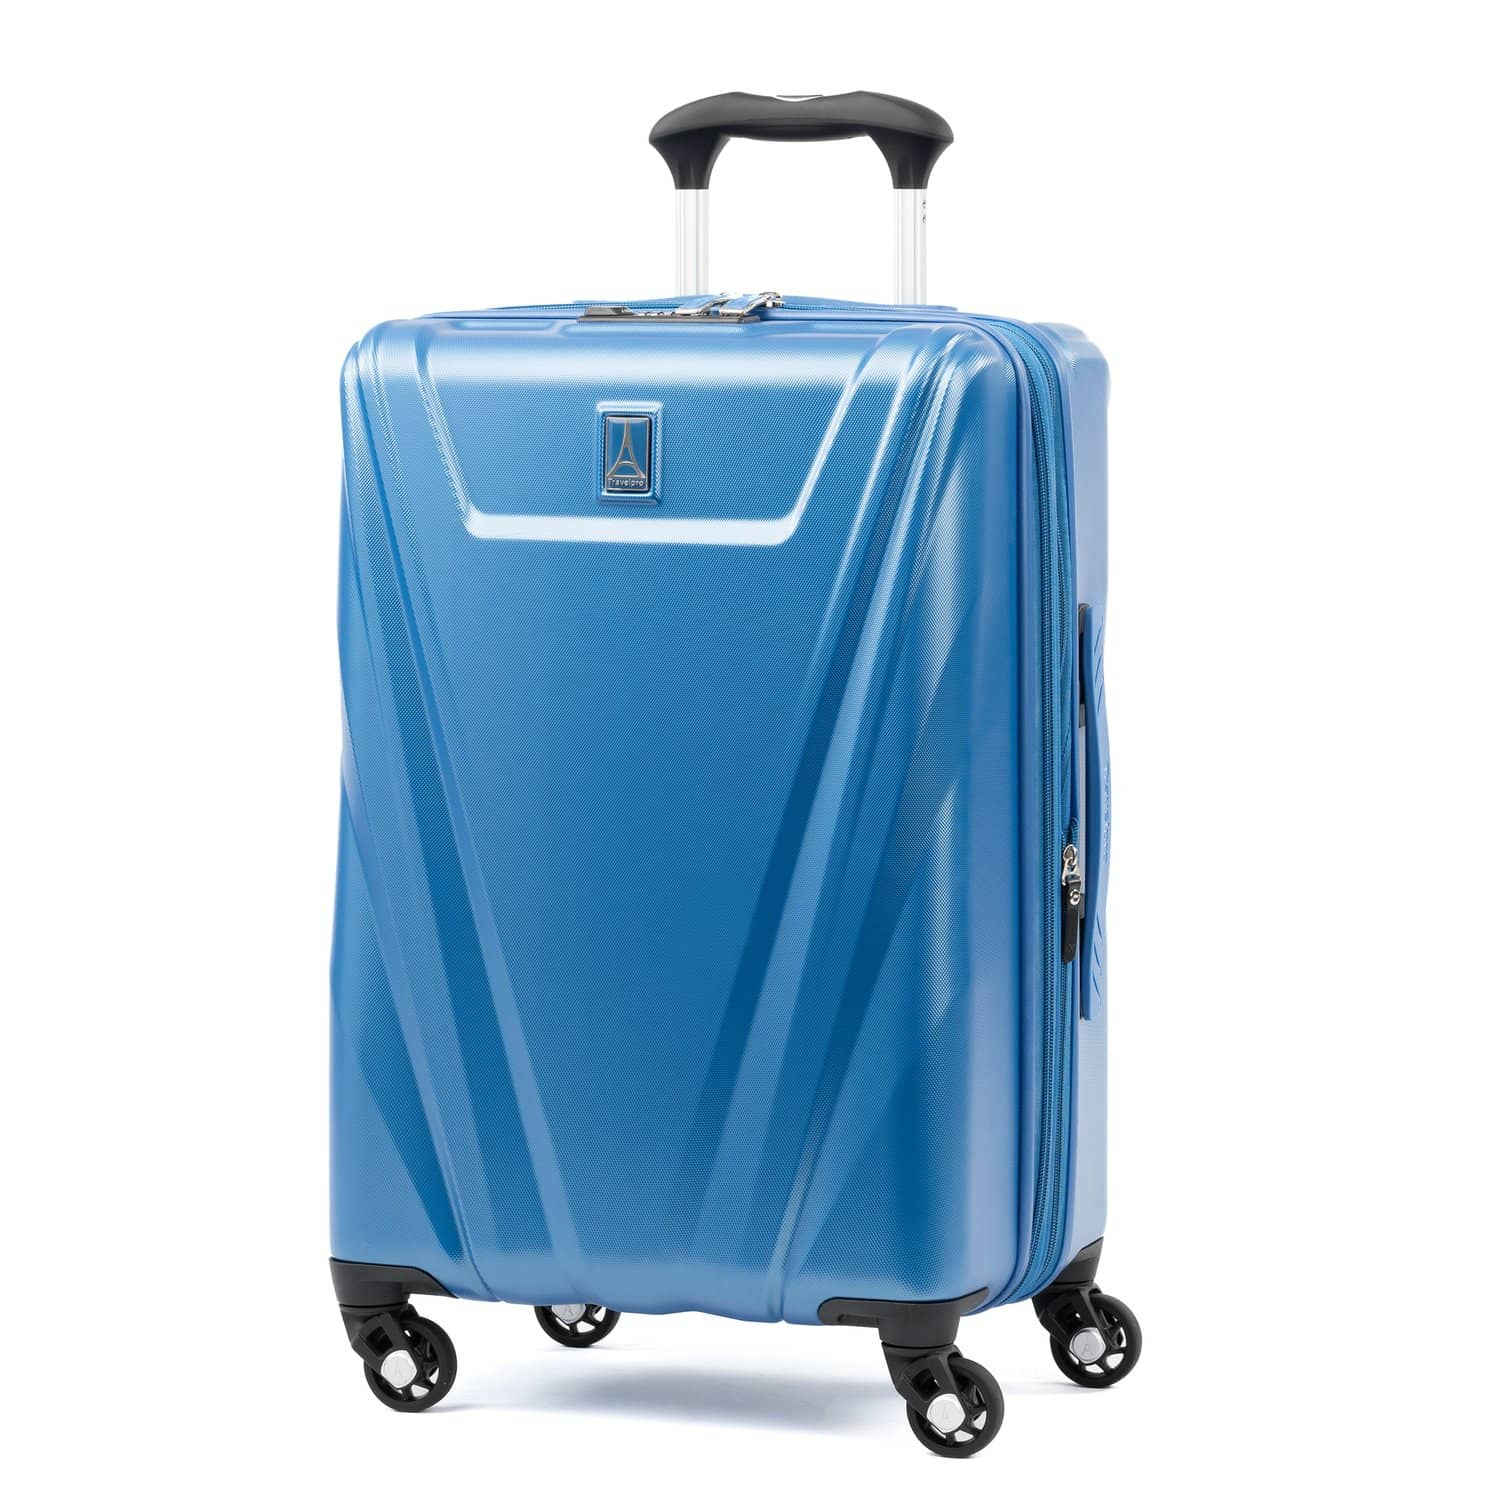 Travelpro Maxlite® 5 Expandable Carry-on Hardside Spinner AZURE BLUE